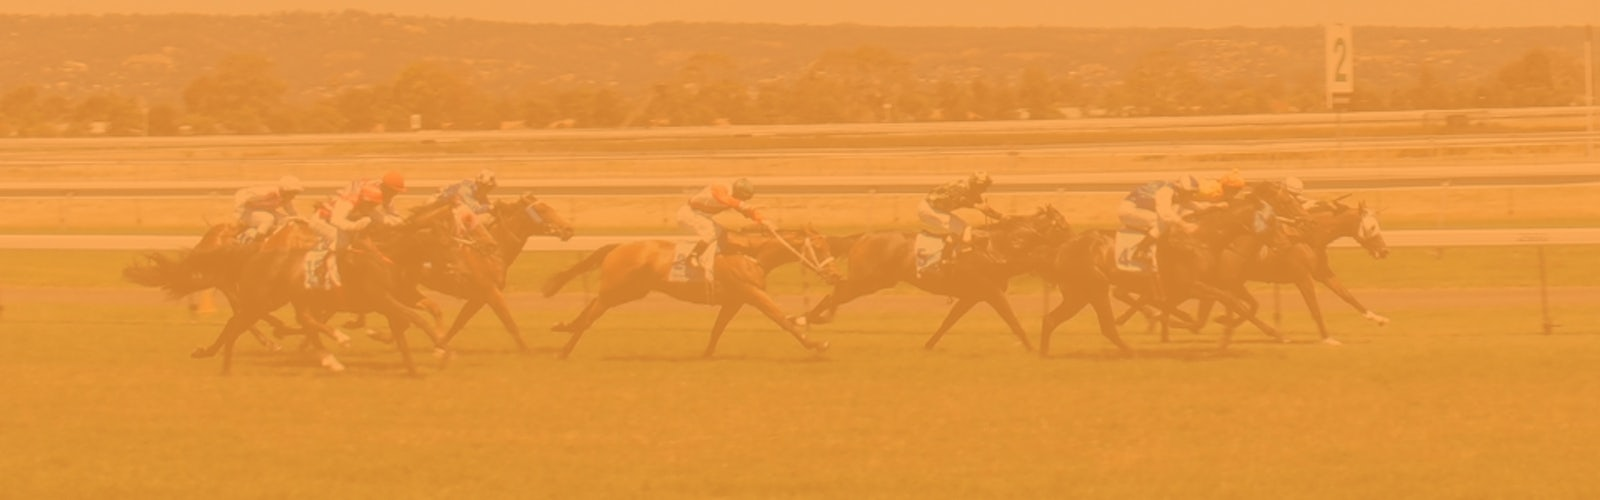 Horse Racing Betting Sites India